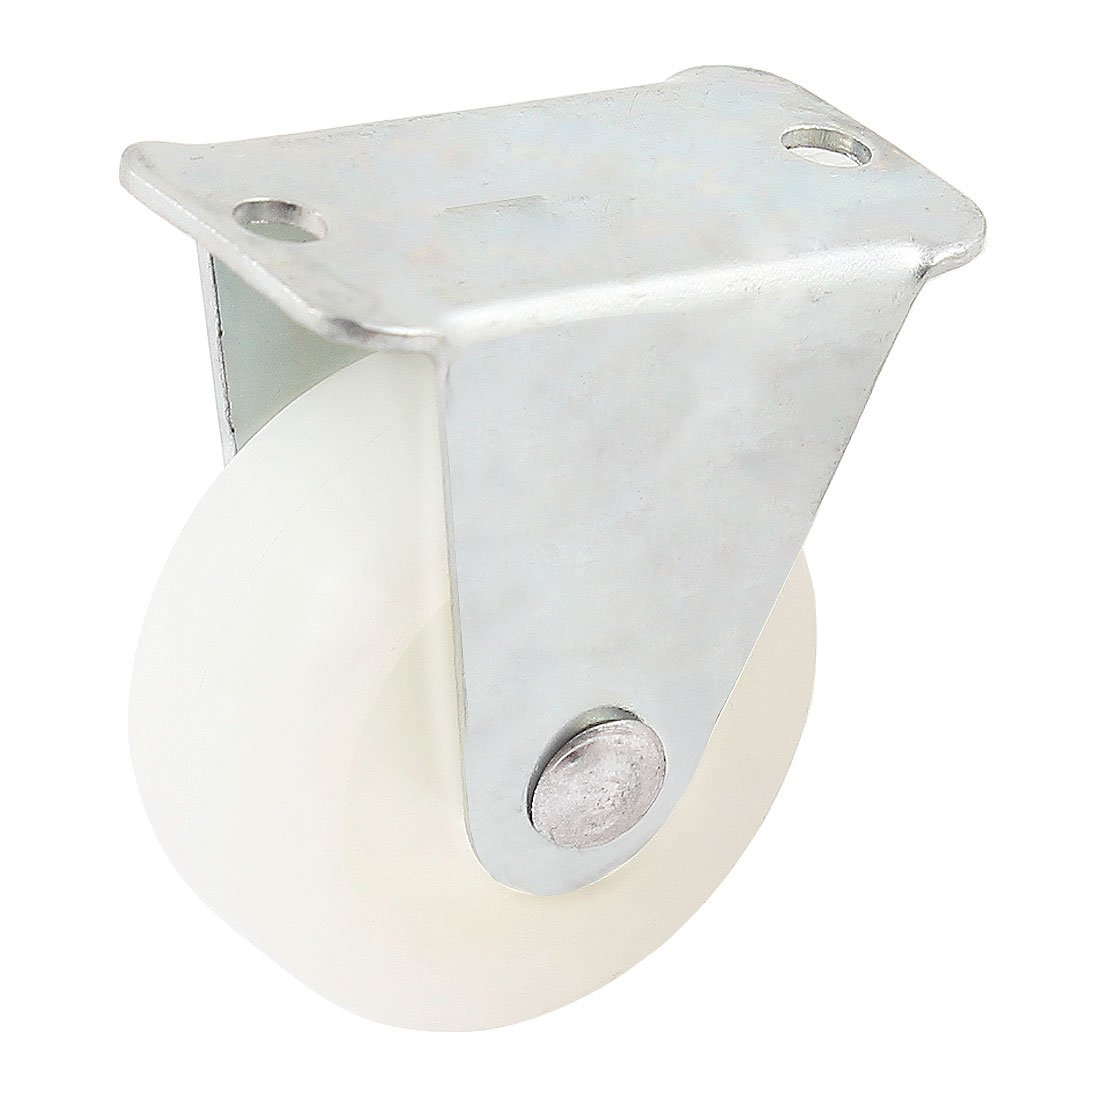 Uxcell 1.2 Inch Dia Trolley Fixed Wheel Caster Screw Mount Plate White